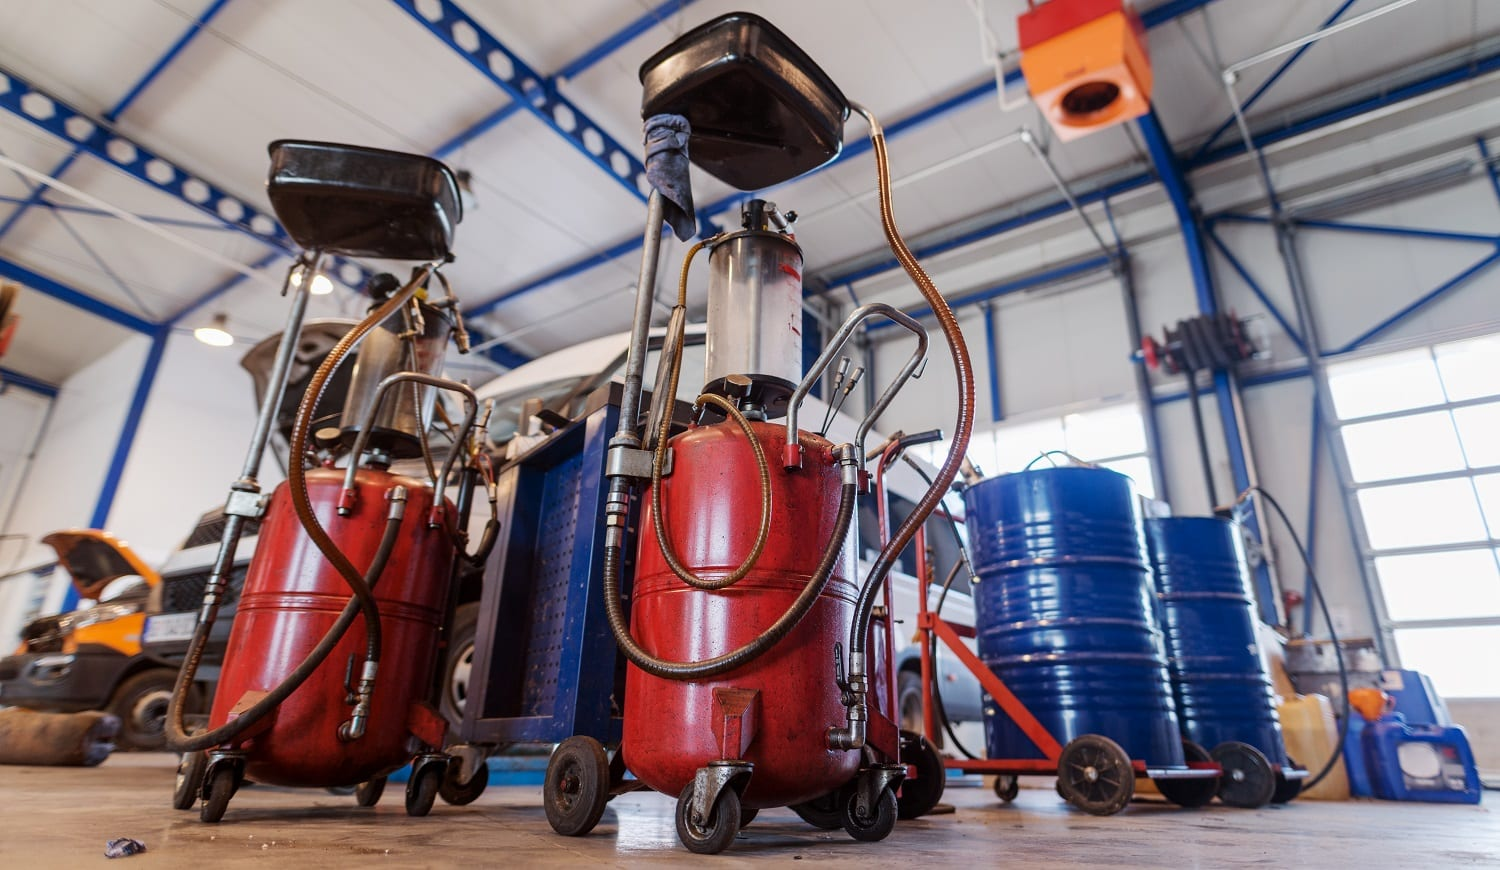 Picture of tanks with motor oil or gasoline in car workshop.